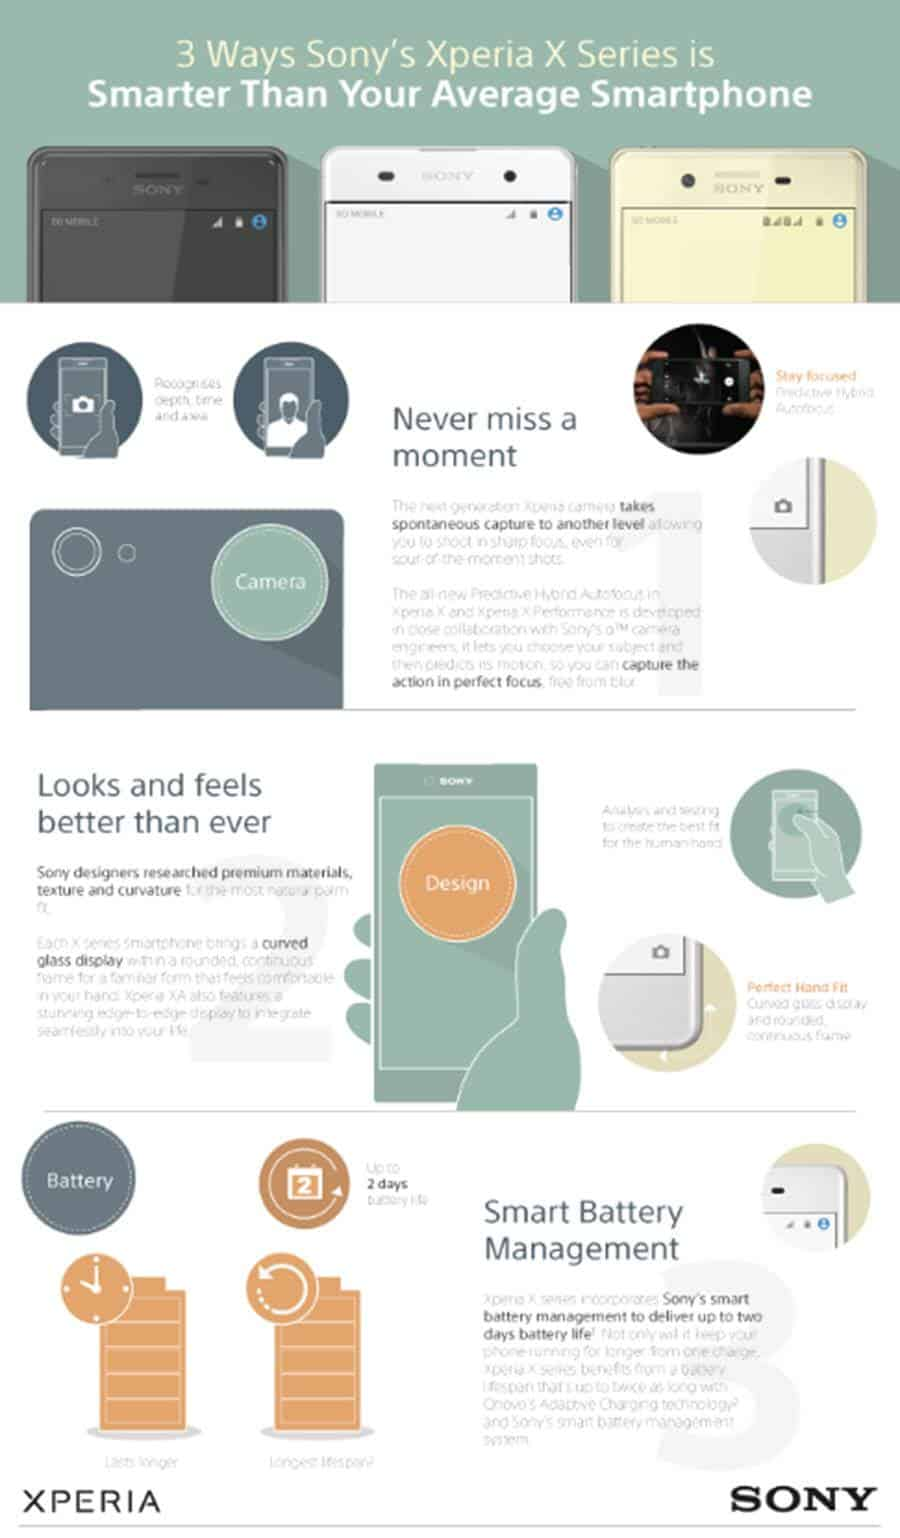 Sony Xperia X Series Infographic